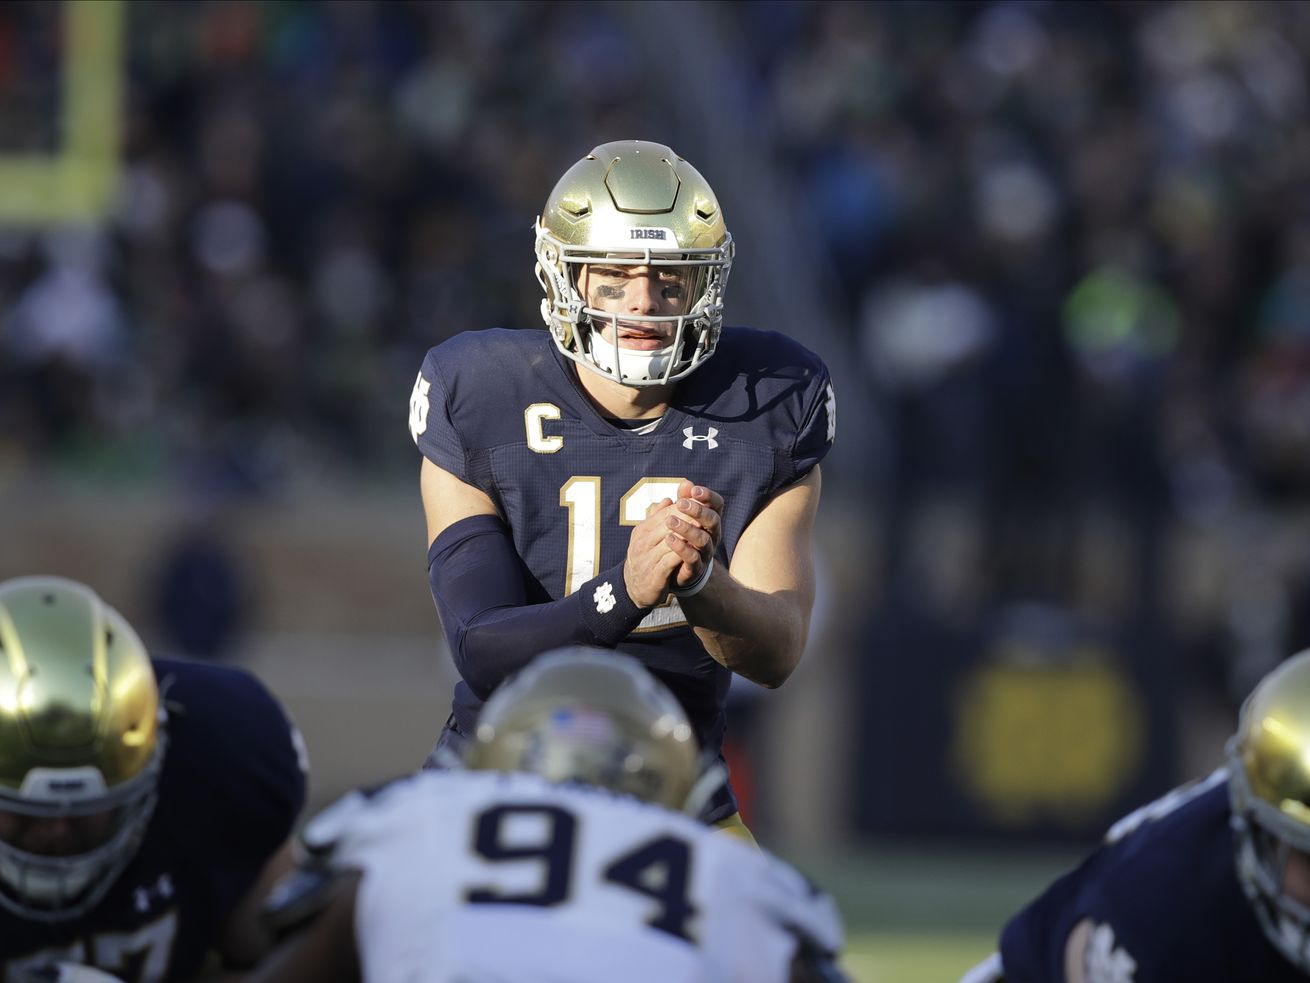 Notre Dame-Wake Forest game postponed after players test positive for COVID-19